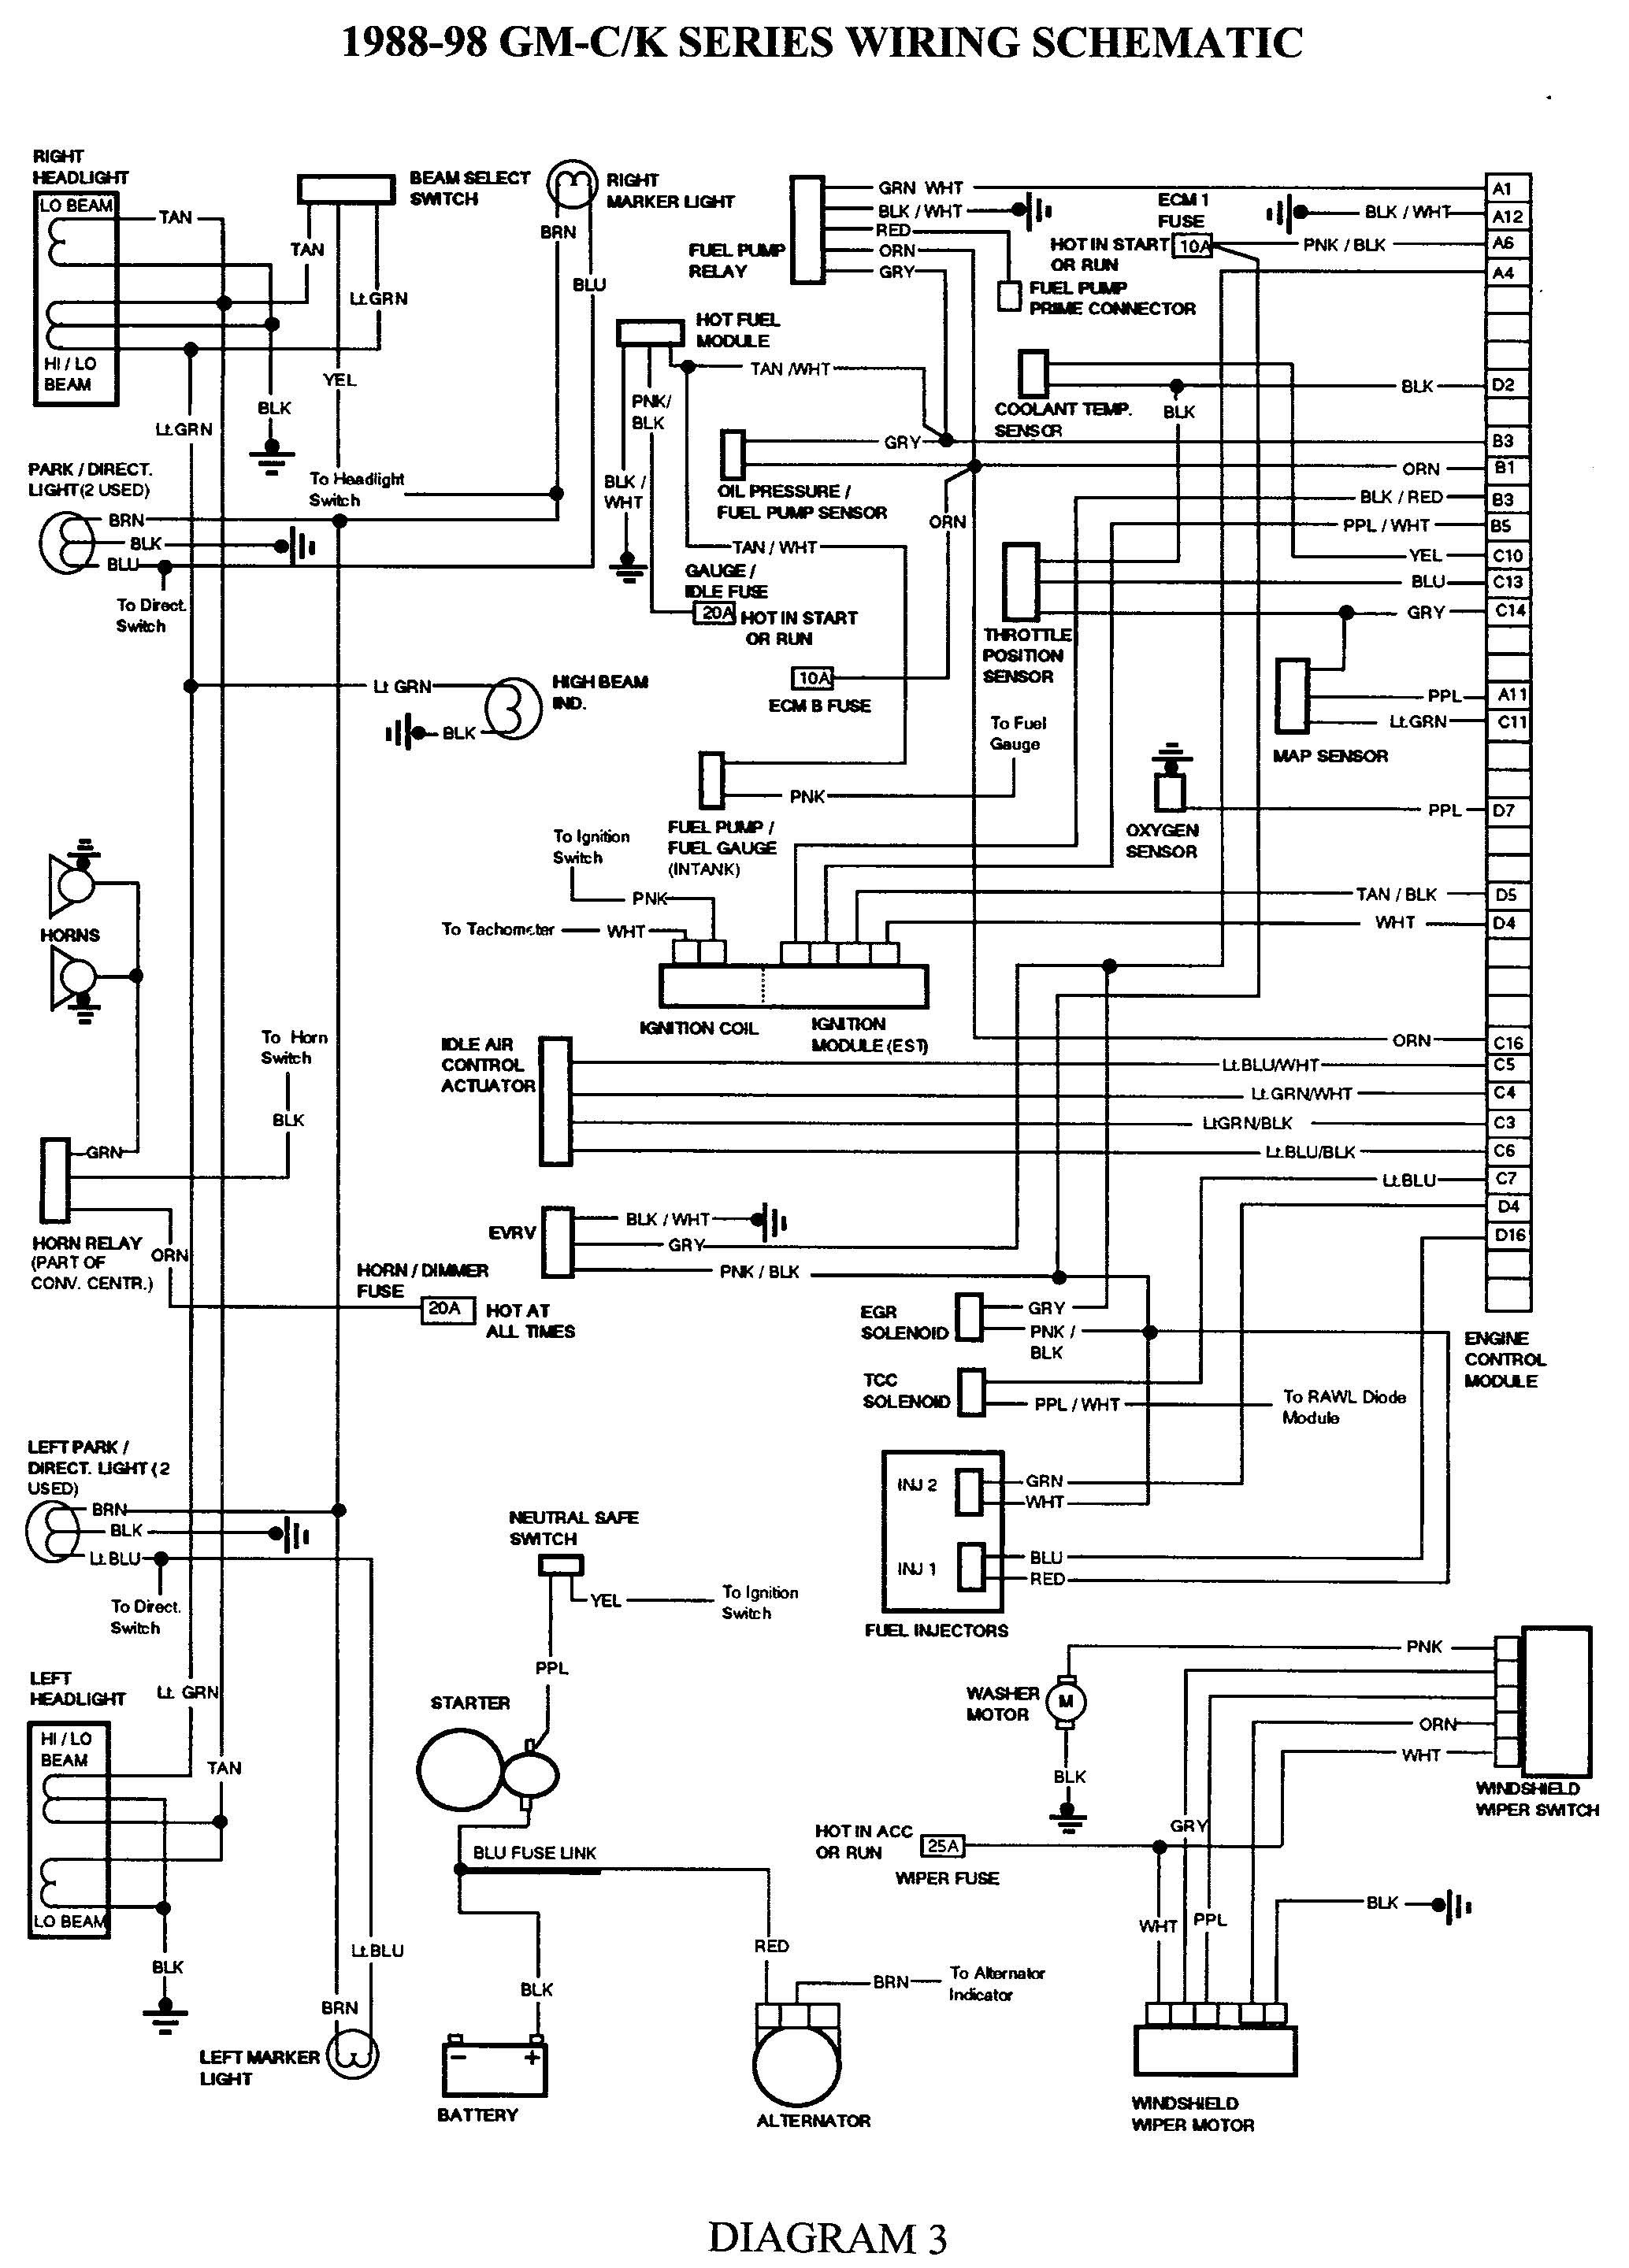 2005 gmc sierra wiring diagram wiring diagram 2003 gmc sierra new 2004 gmc sierra 1500 wiring diagram 2005 gmc sierra wiring diagram 98 gmc sierra headlight wiring diagram circuit diagrams image of 2005